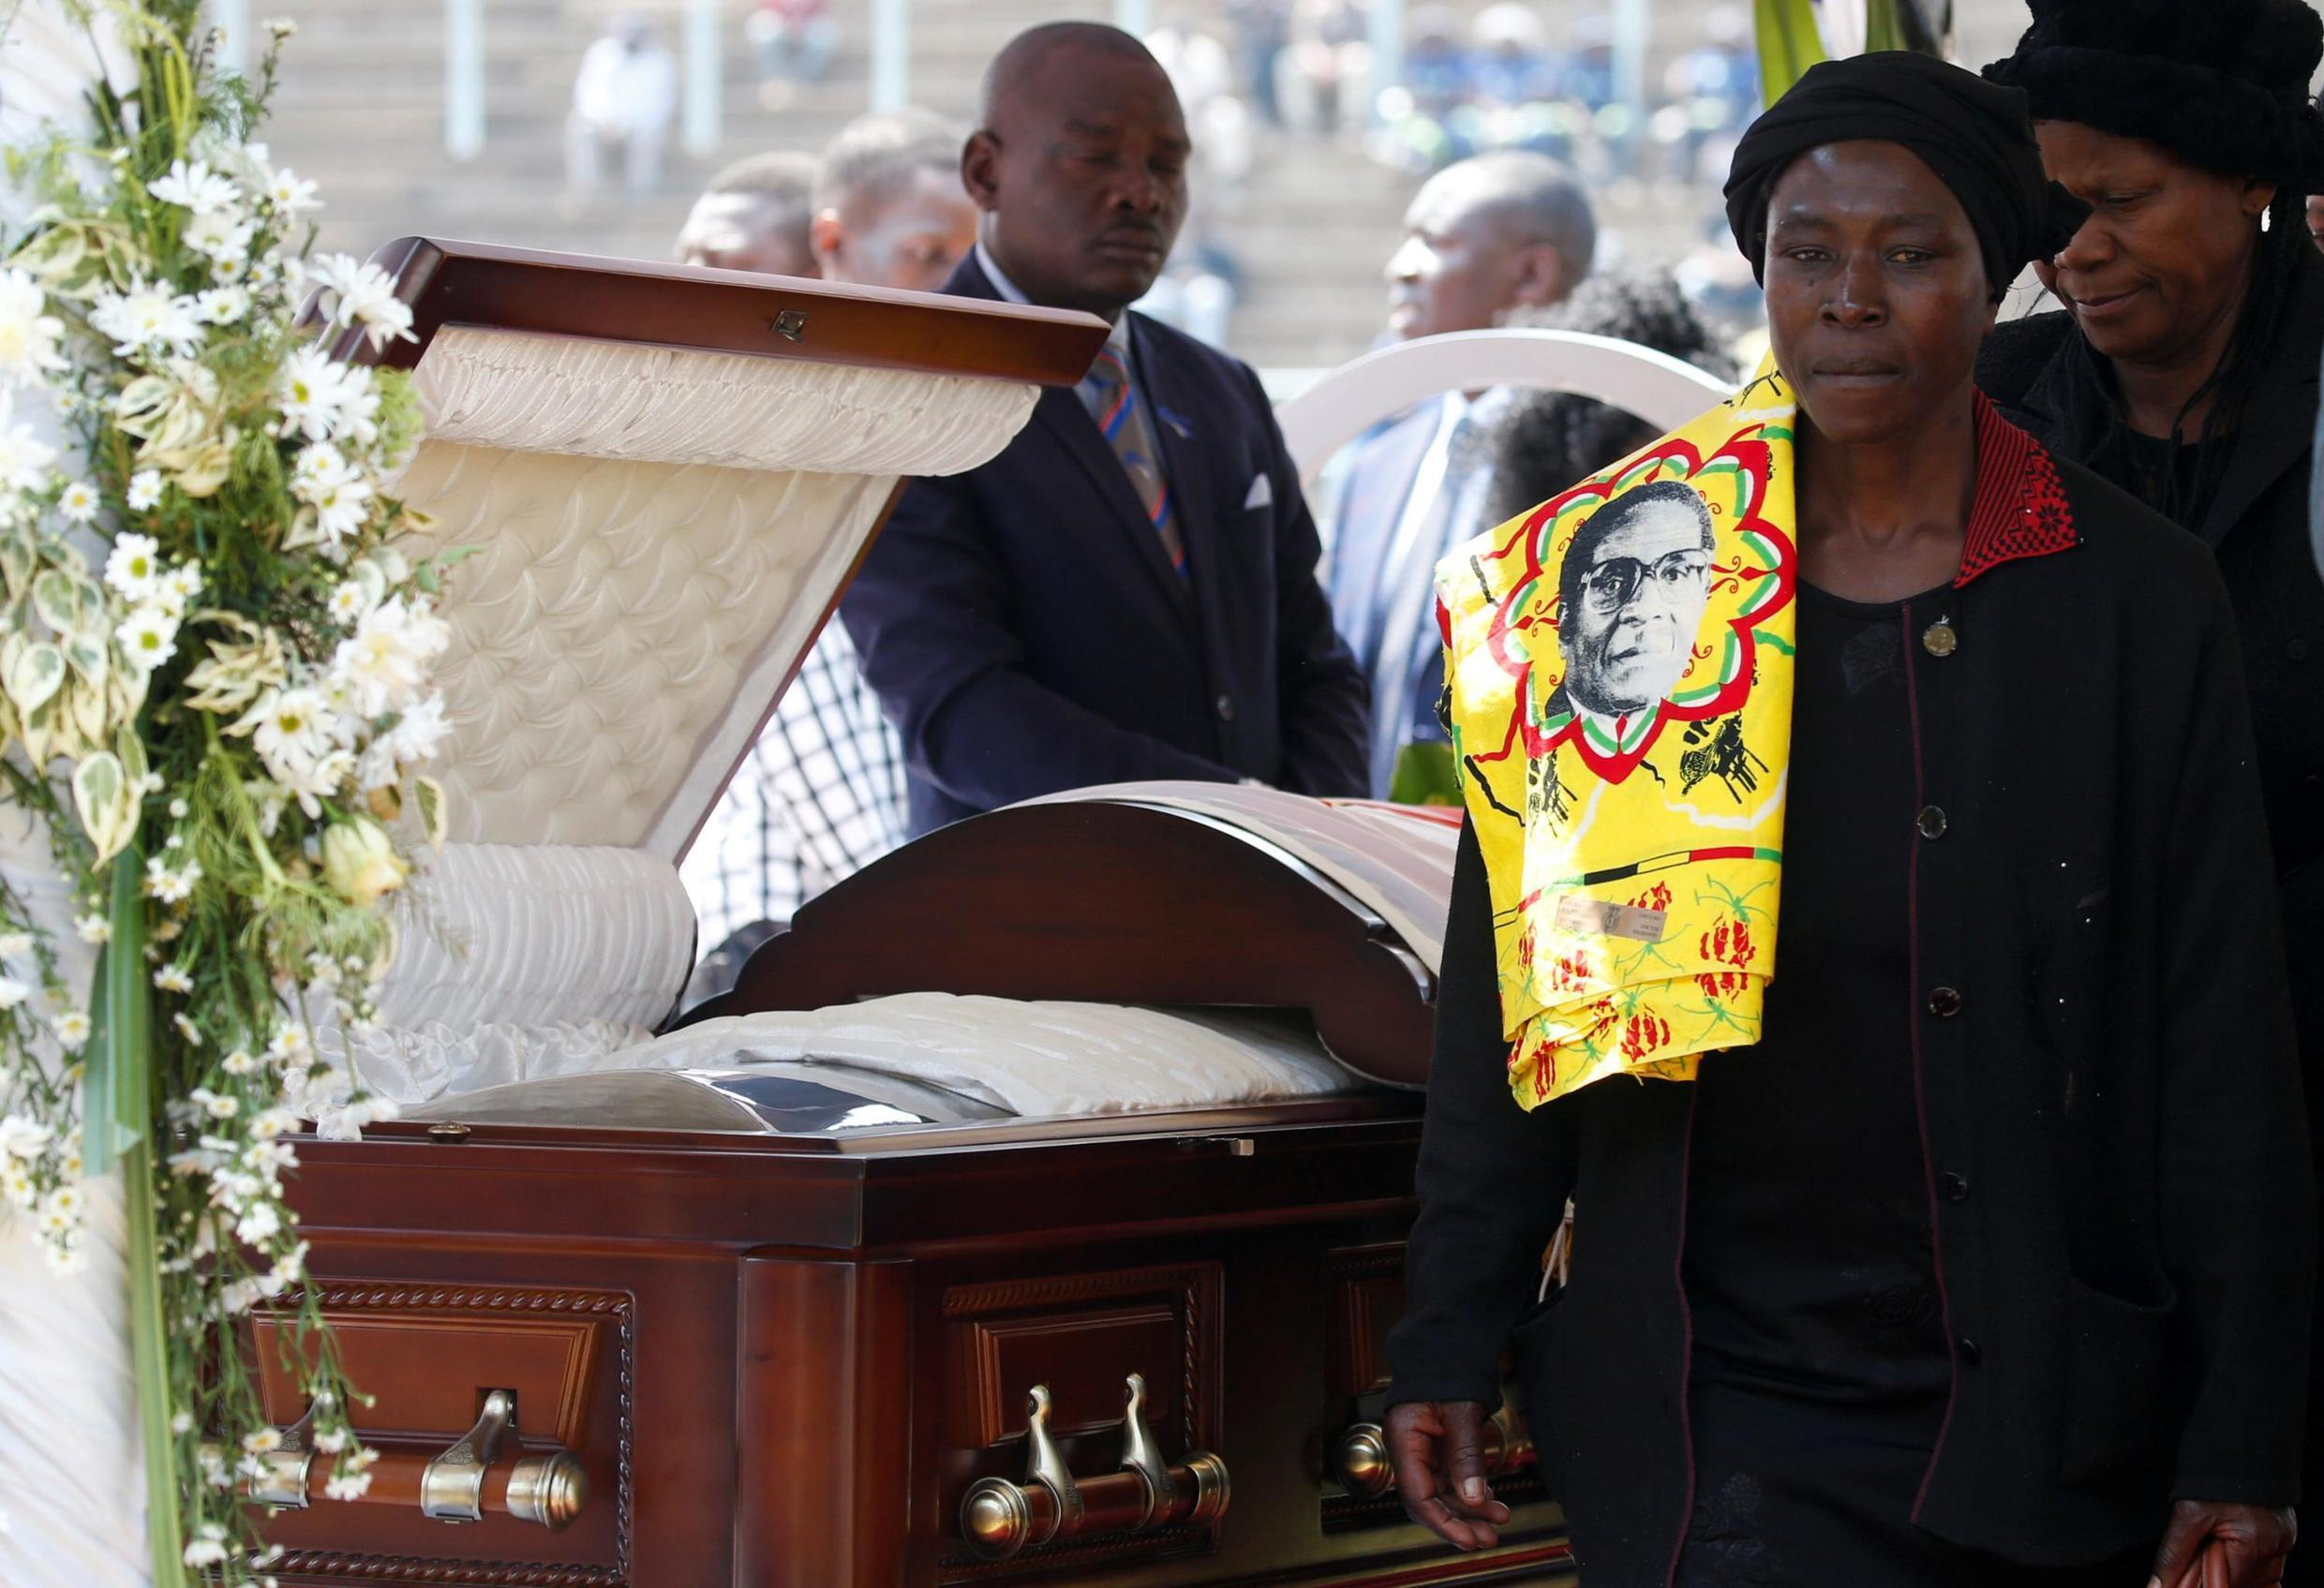 A mourner with a regalia bearing the face of Mugabe, walks after paying her last respects to Robert Mugabe's body as it lies in state at the at Rufaro stadium, in Harare, Zimbabwe, September 13, 2019